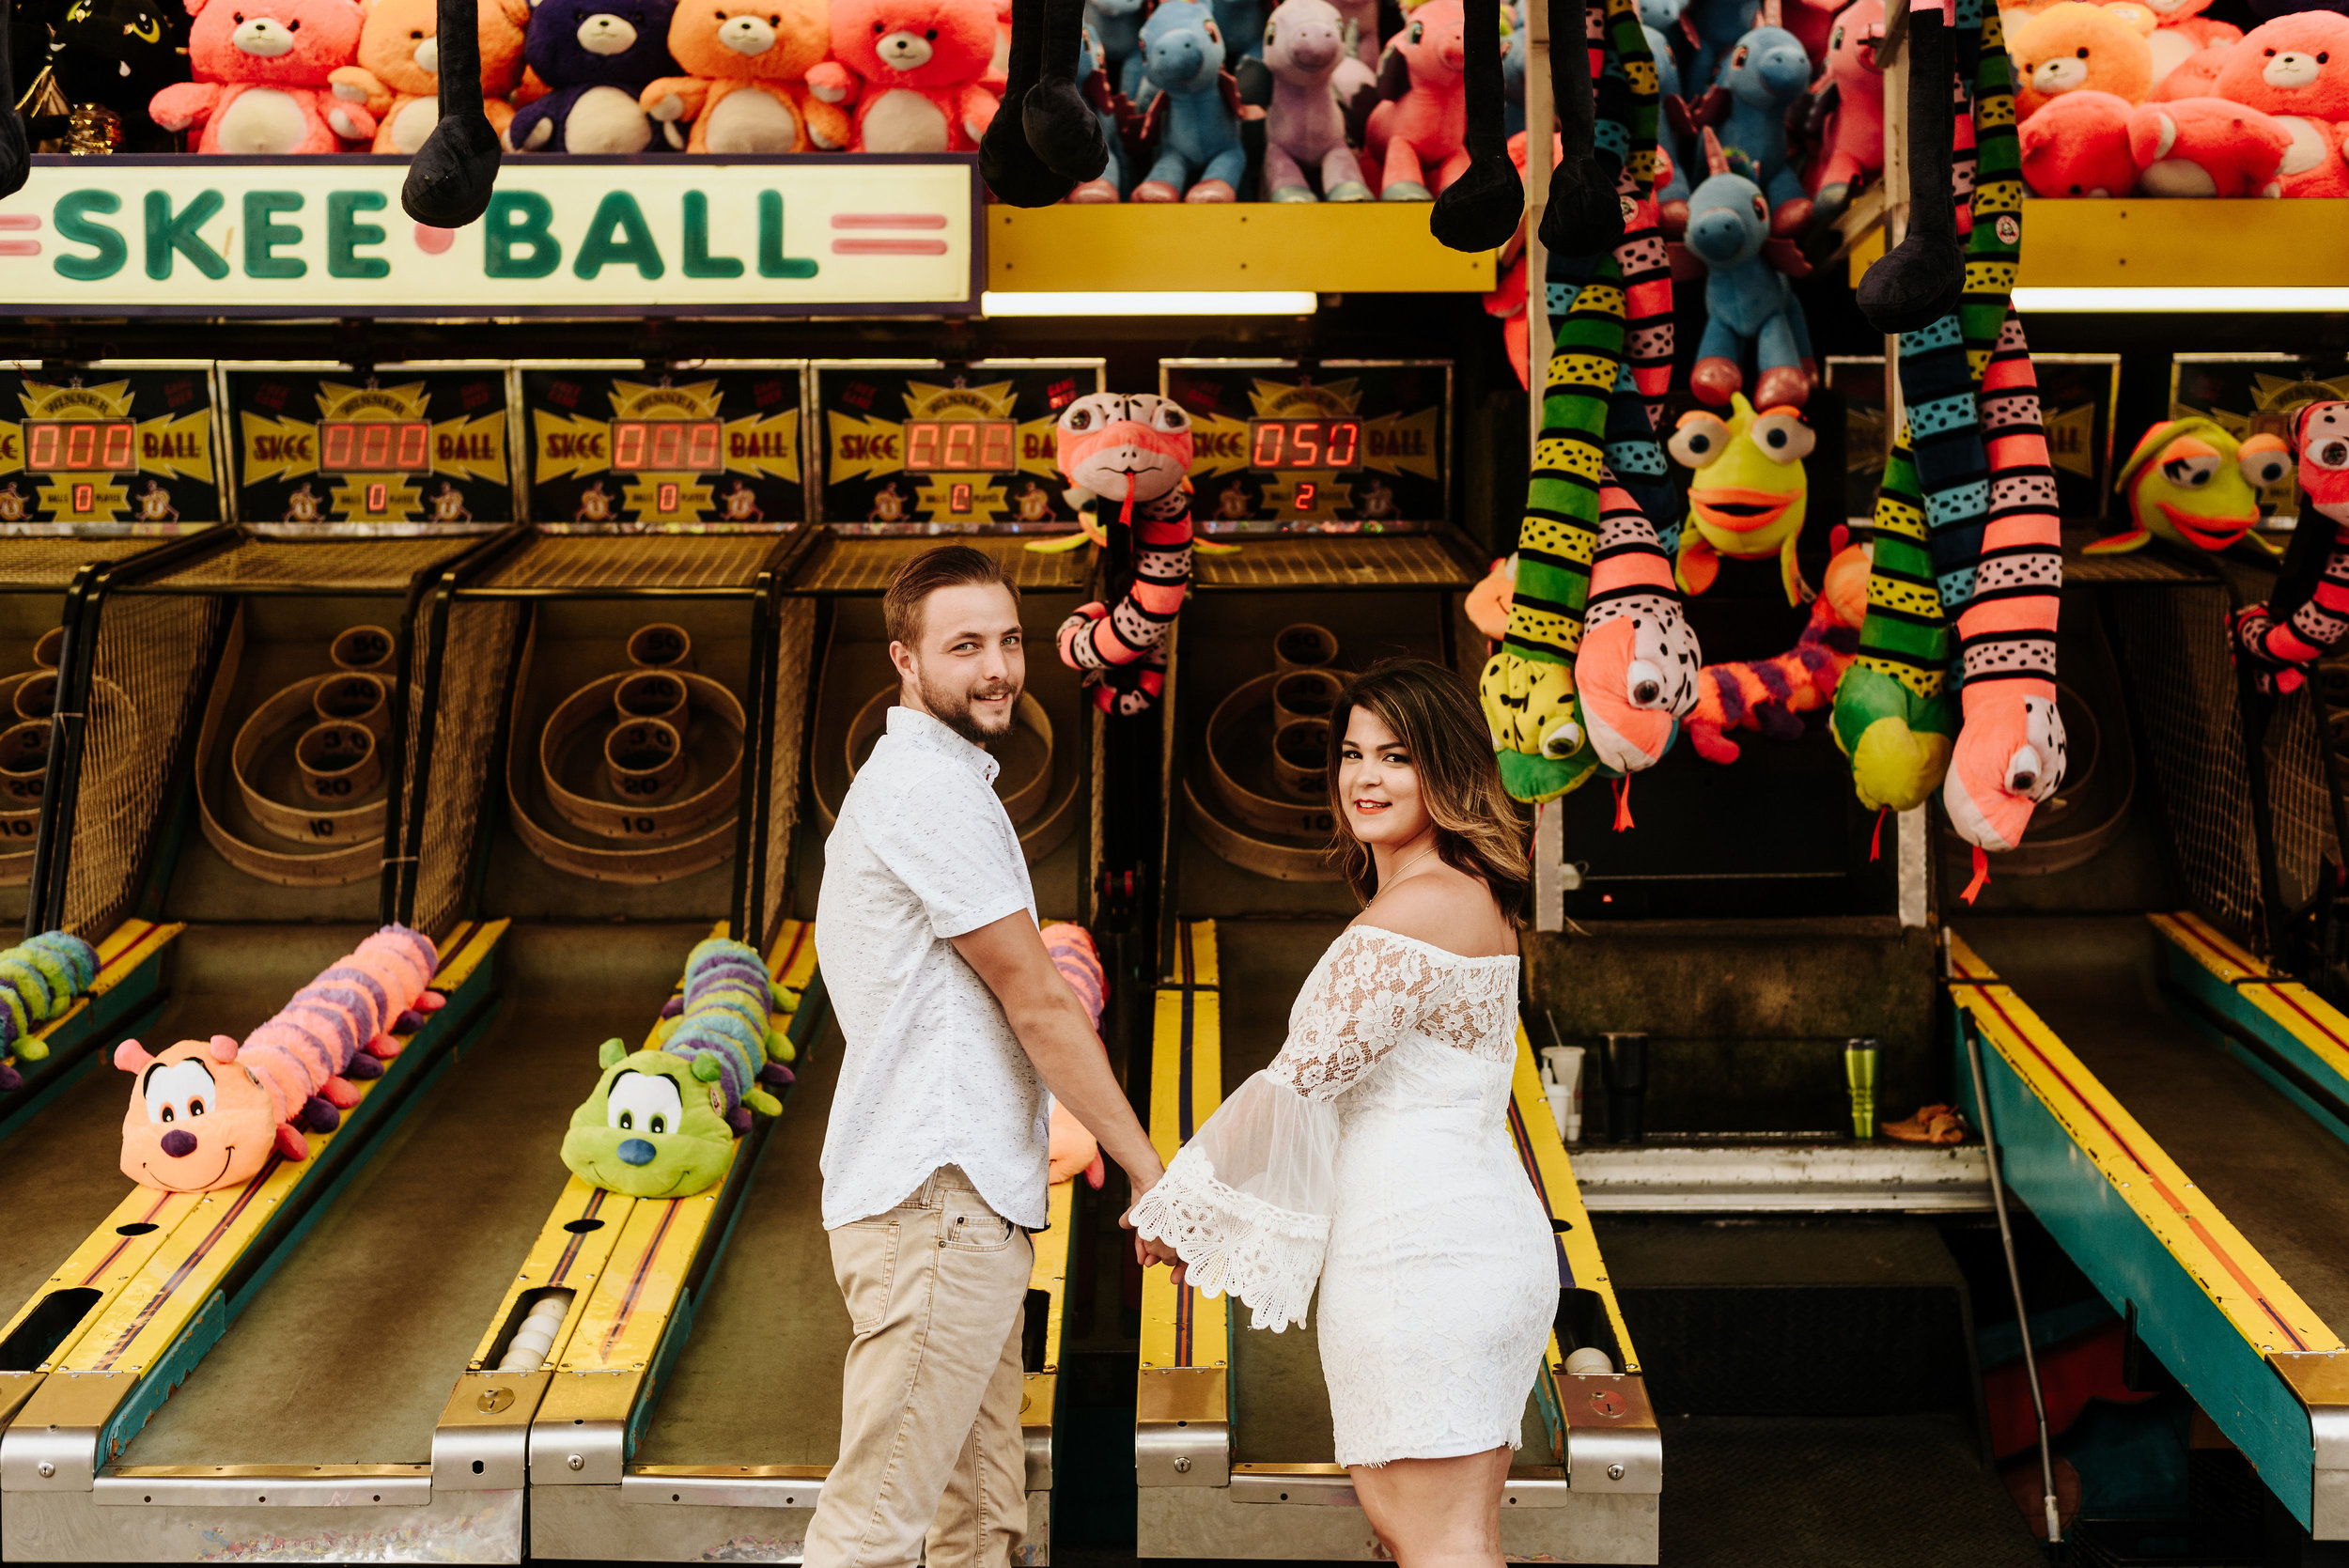 Ana_Justin_Engagement_Session_Miami_Dade_Fair_Photography_by_V_3278.jpg